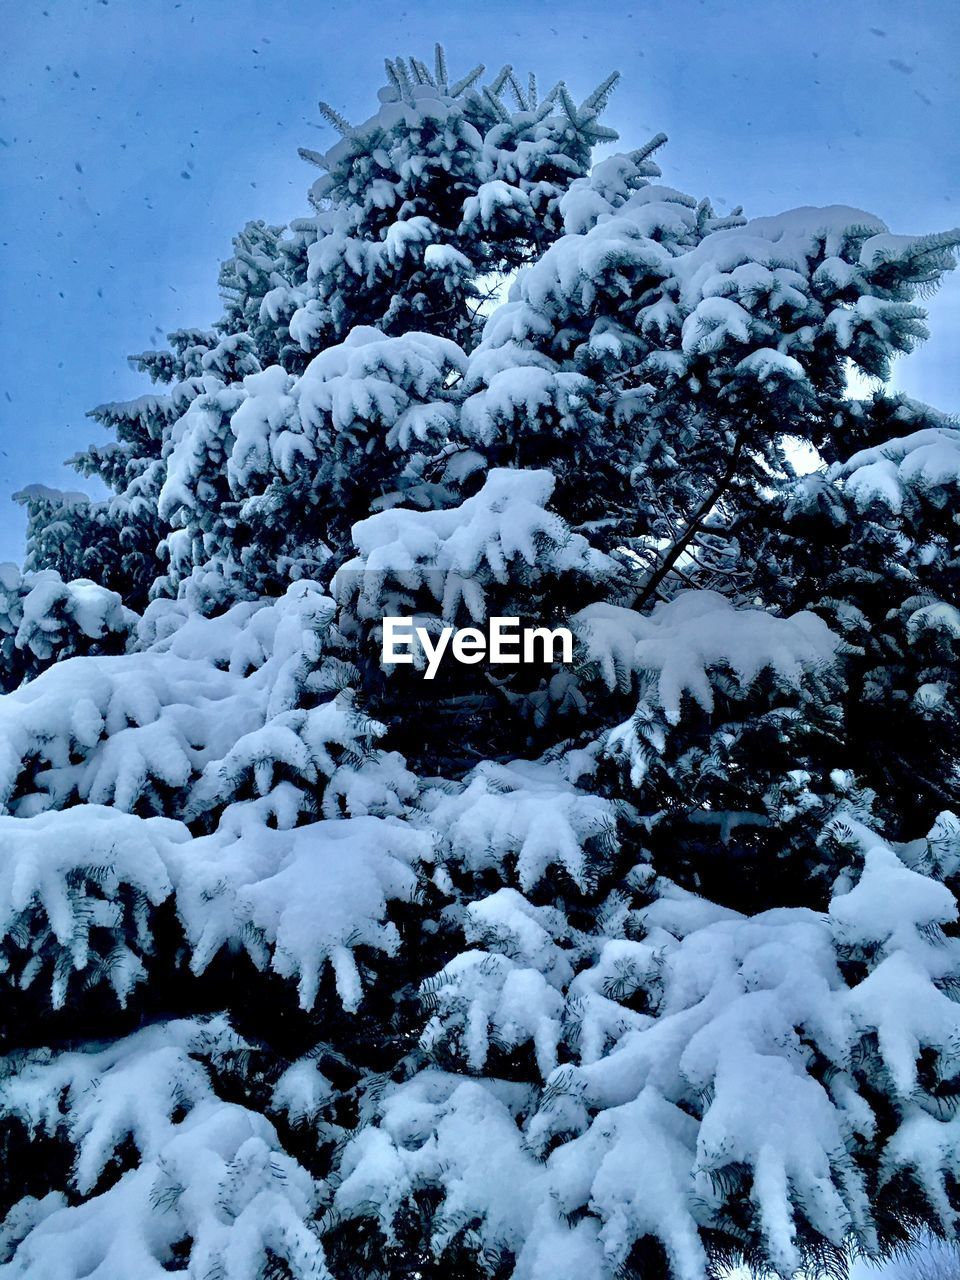 cold temperature, snow, nature, white color, beauty in nature, winter, no people, weather, scenics, tranquility, day, sky, tranquil scene, outdoors, water, blue, frozen, backgrounds, mountain, close-up, freshness